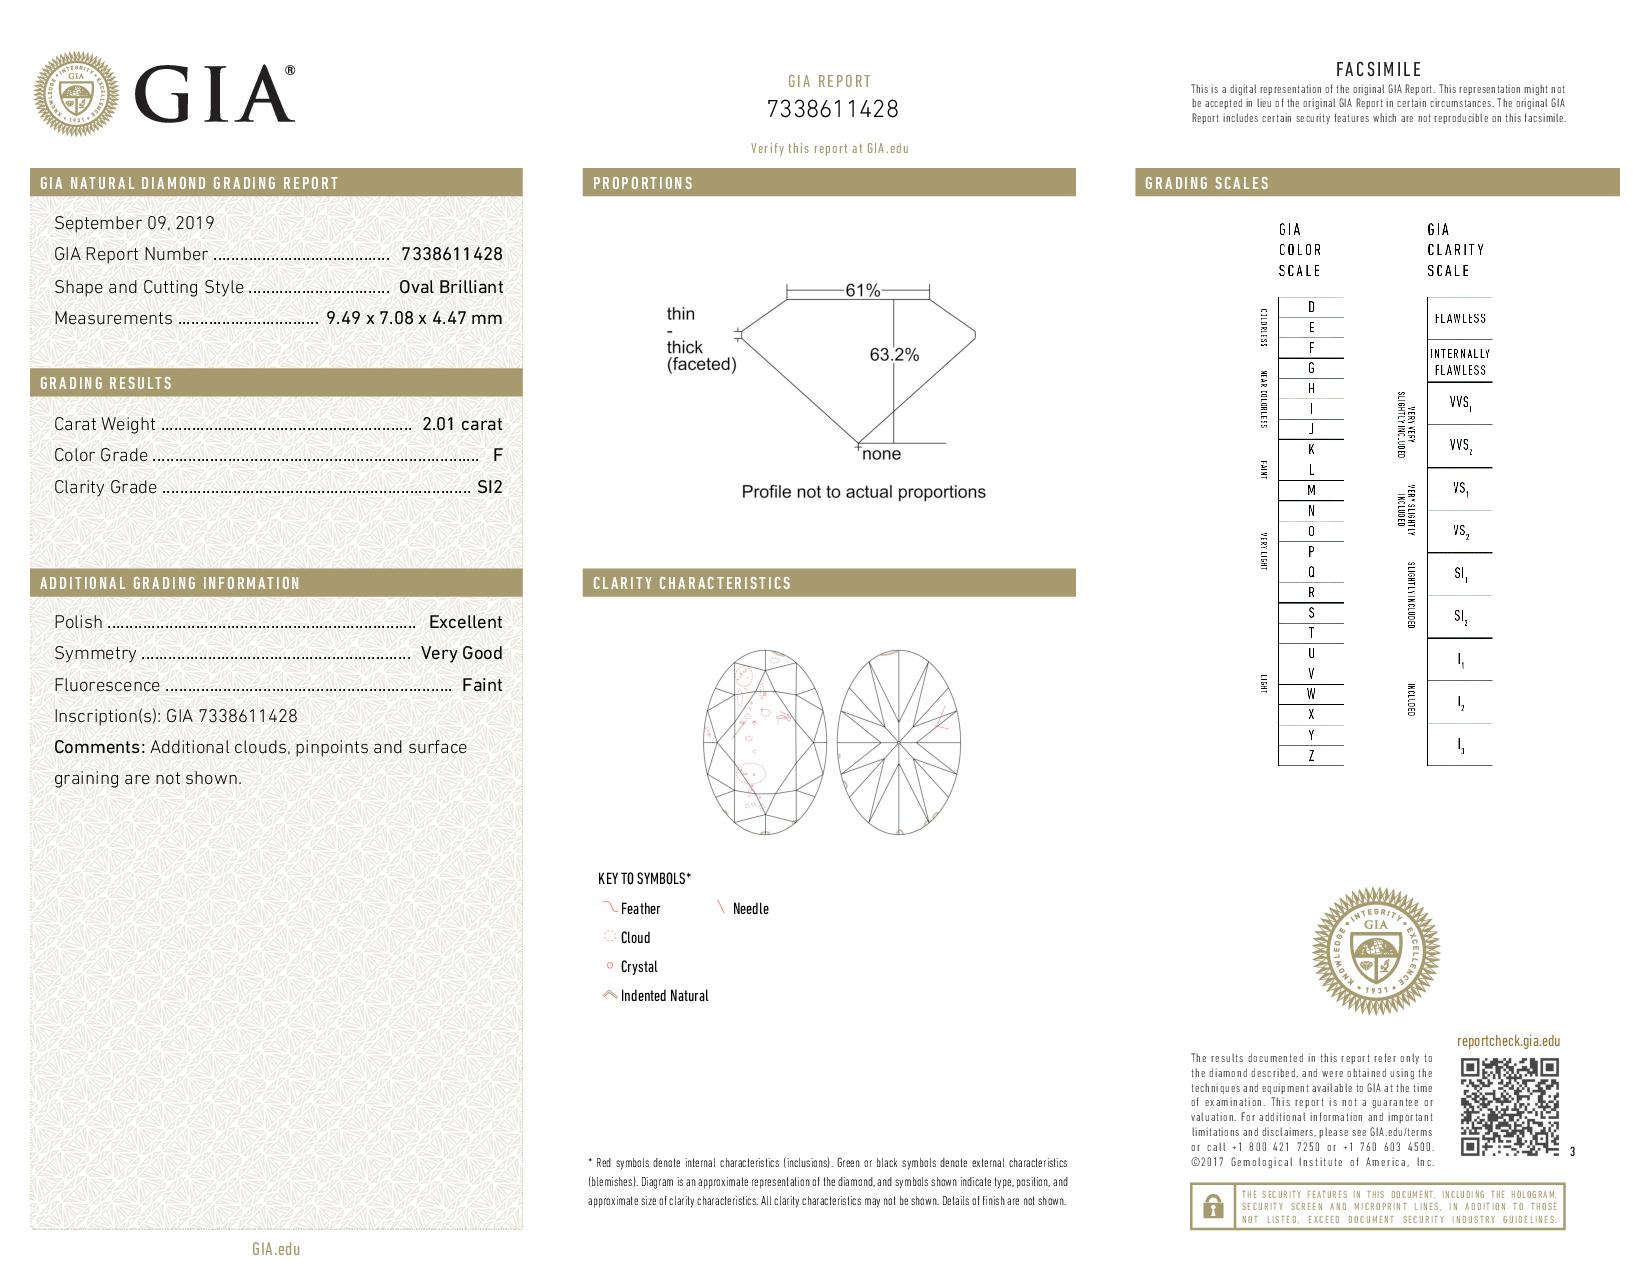 This is a 2.01 carat oval shape, F color, SI2 clarity natural diamond accompanied by a GIA grading report.